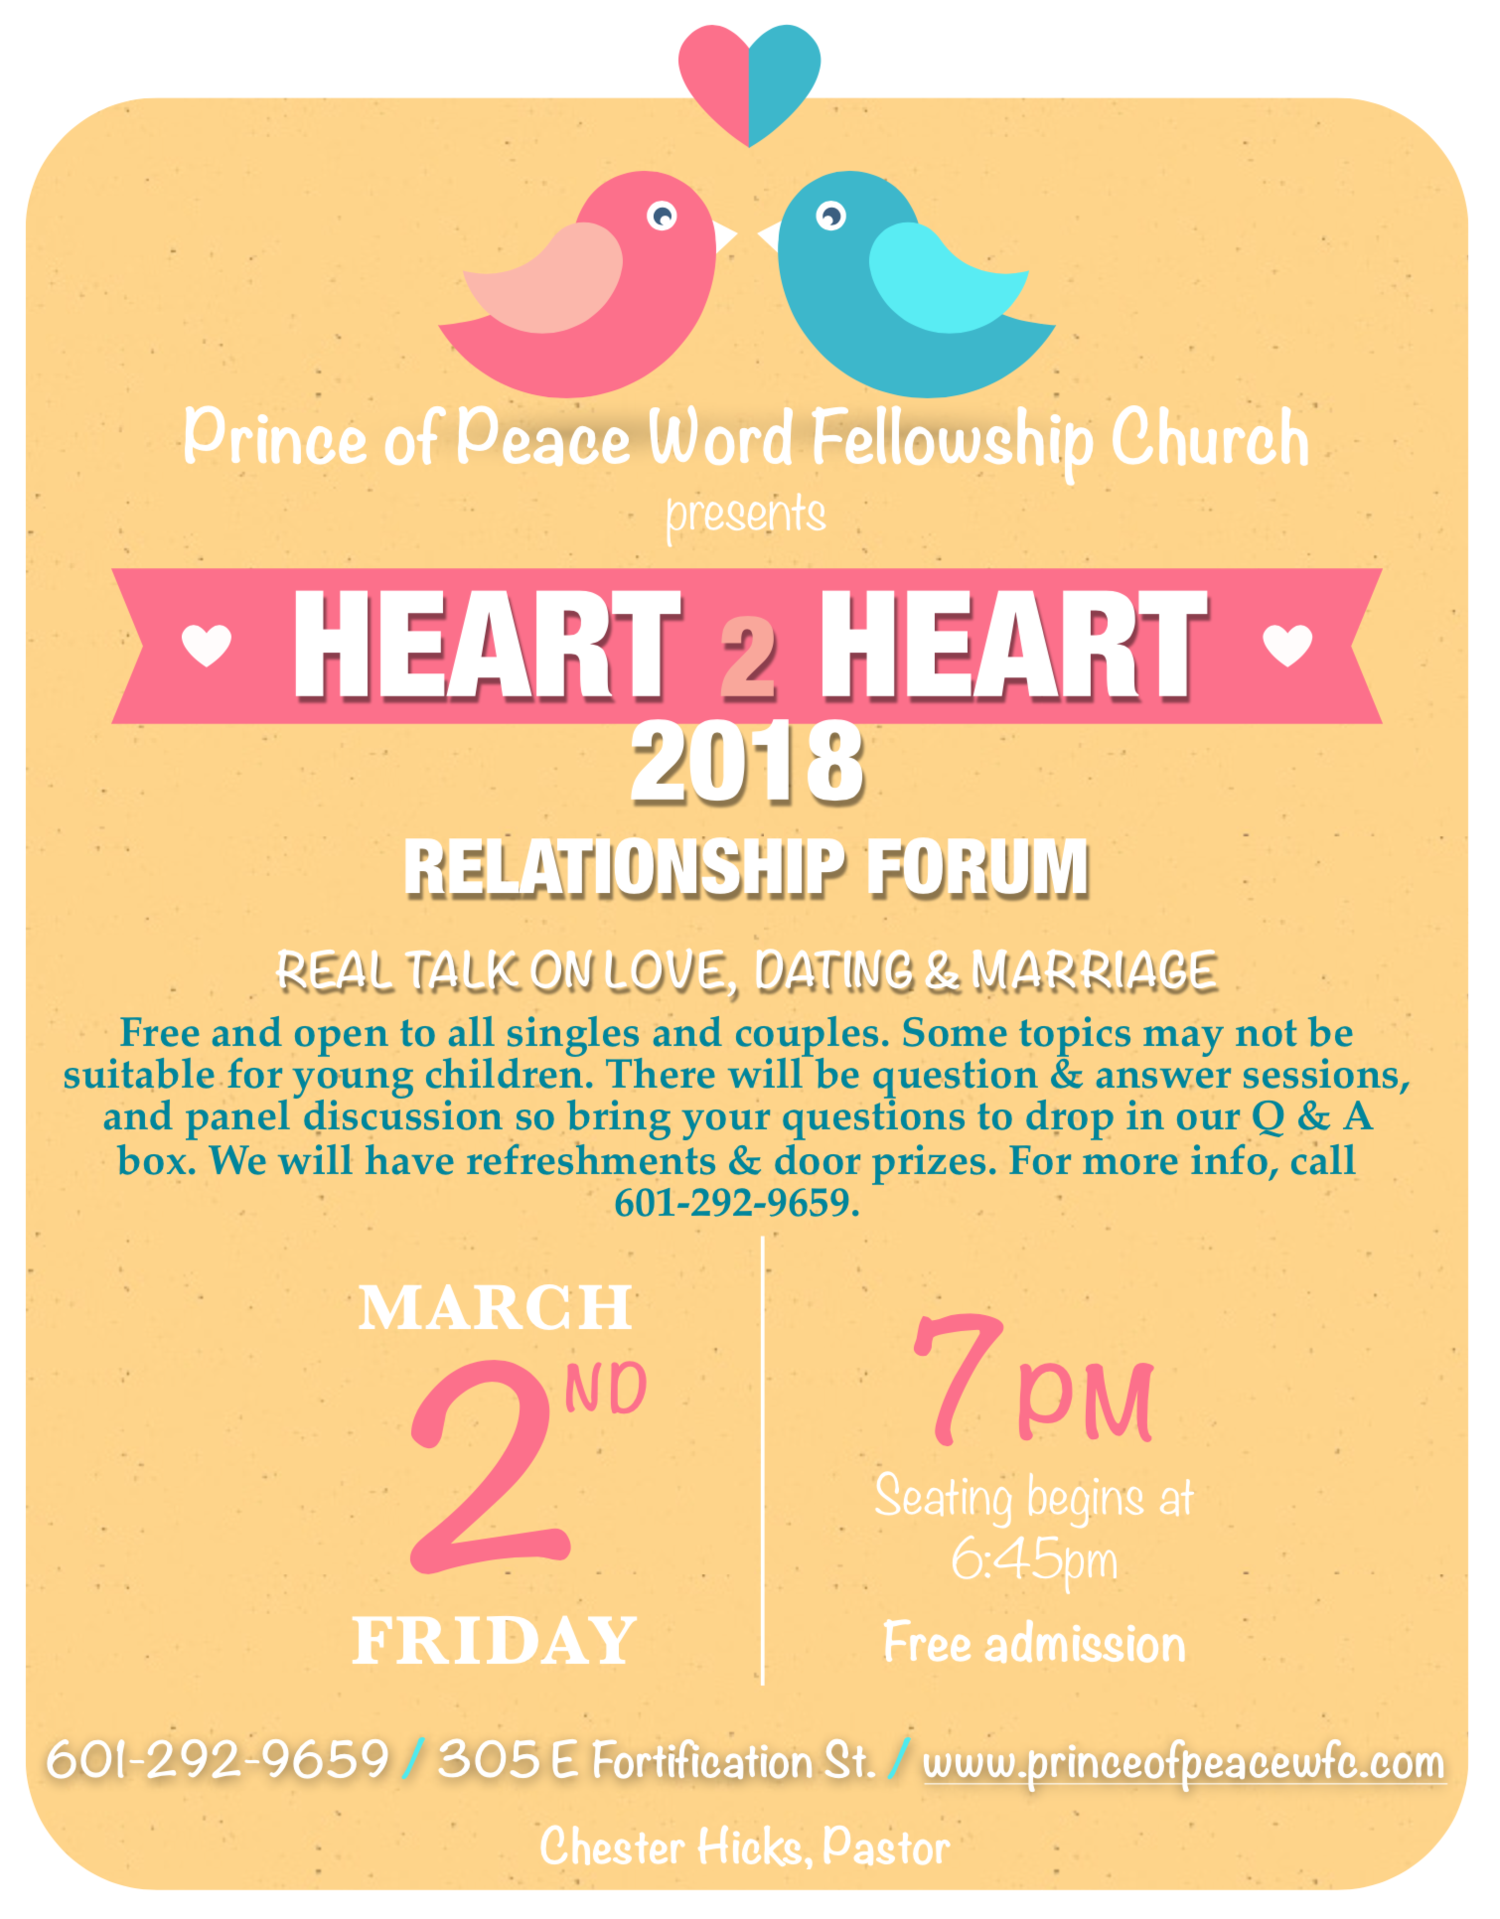 2018 Heart 2 Heart Relationship Forum — Prince of Peace Word